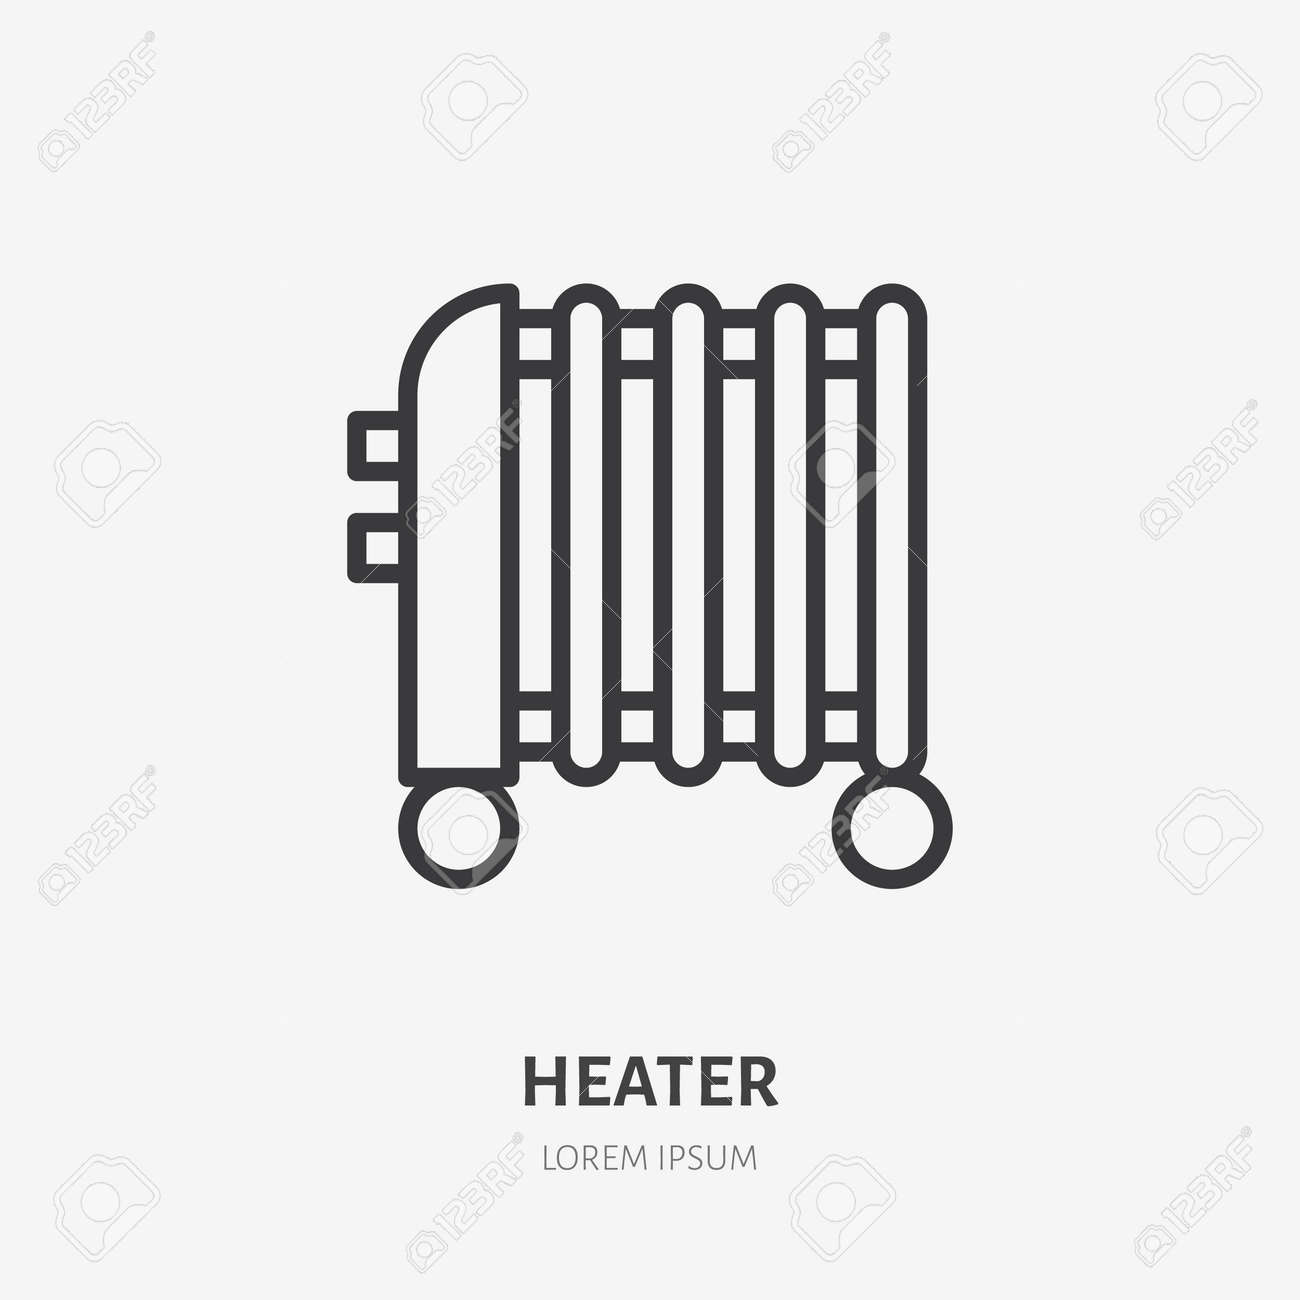 Oil heater flat line icon. Vector outline illustration of domestic heater. Black color thin linear sign for interior portable thermostat. - 162491646